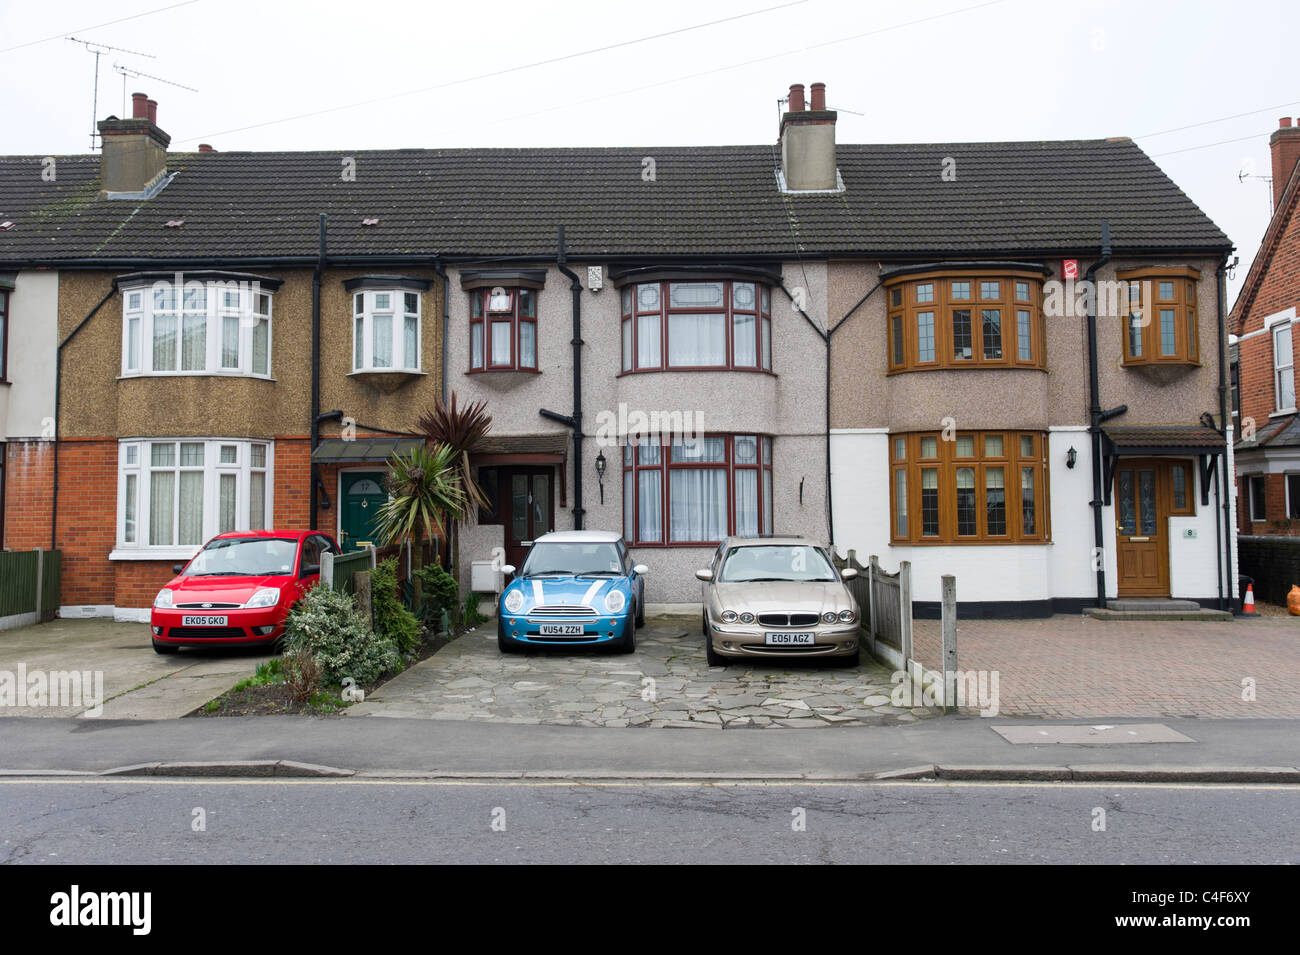 Cars parked in the front garden, Romford, London, UK - Stock Image